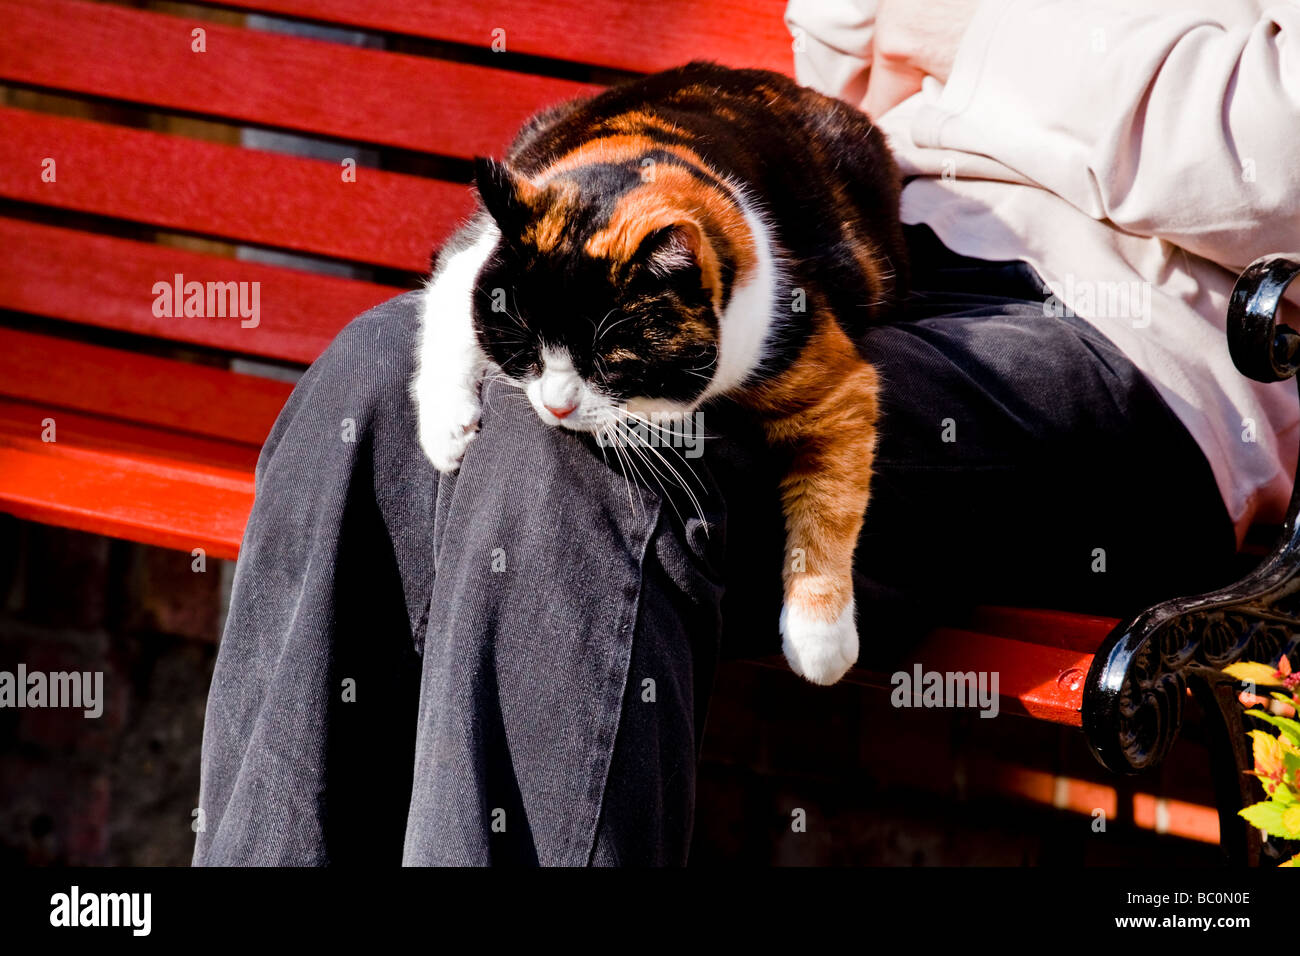 TORTOISESHELL DOMESTIC CAT DRAPED ON A LAP LOOKING SLEEPY - Stock Image